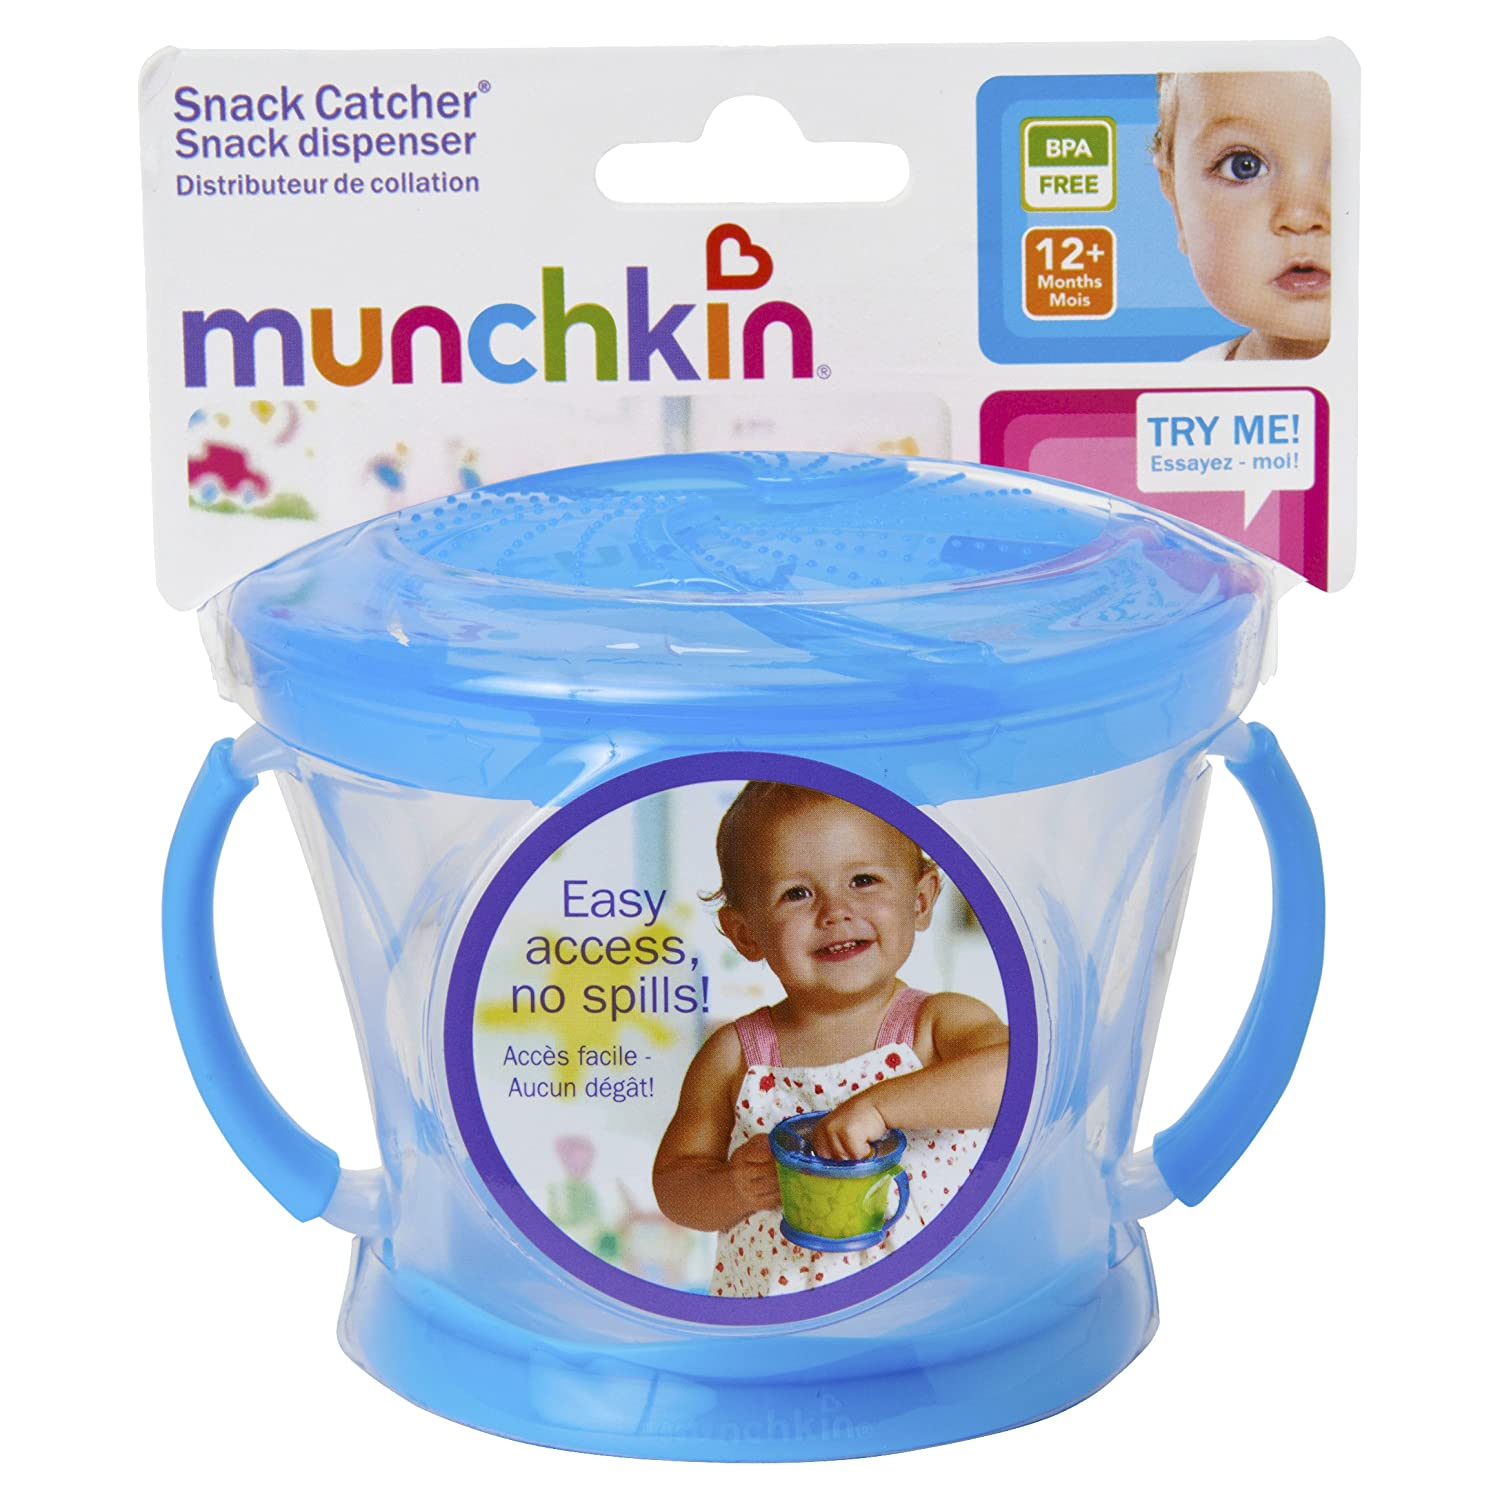 Munchkin 2 Piece Snack Catcher Blue/green Feeding